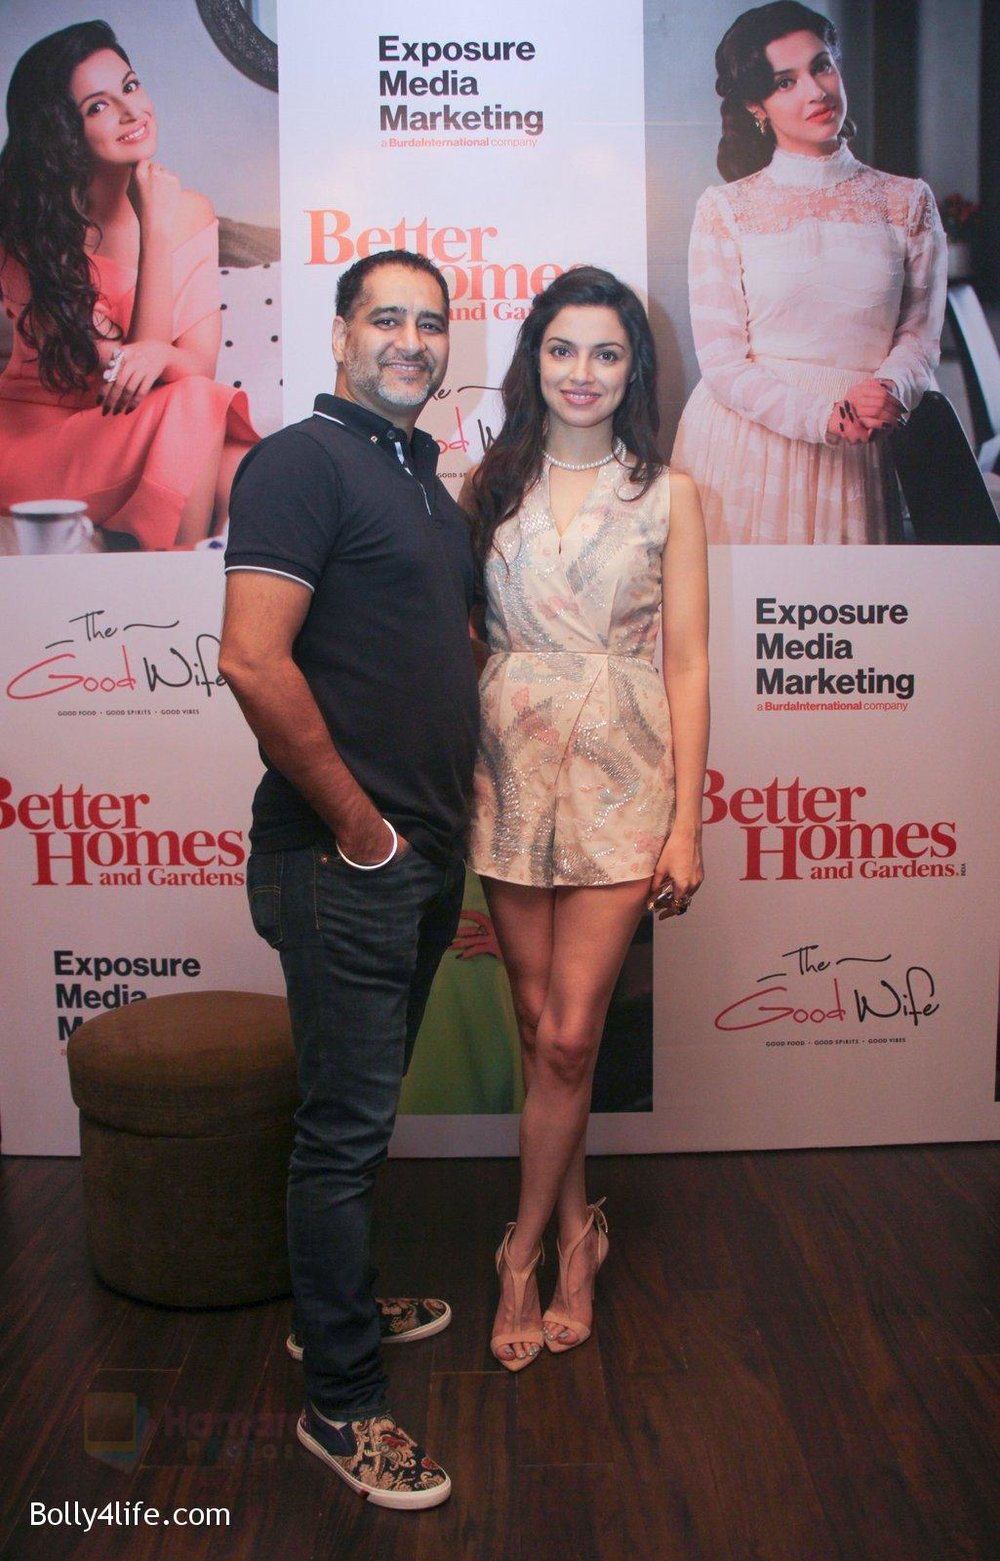 Divya-Khosla-Kumar-graces-the-success-party-celebrating-the-cover-story-of-Better-Homes-Gard-on-14th-Sept-2016-3.jpg